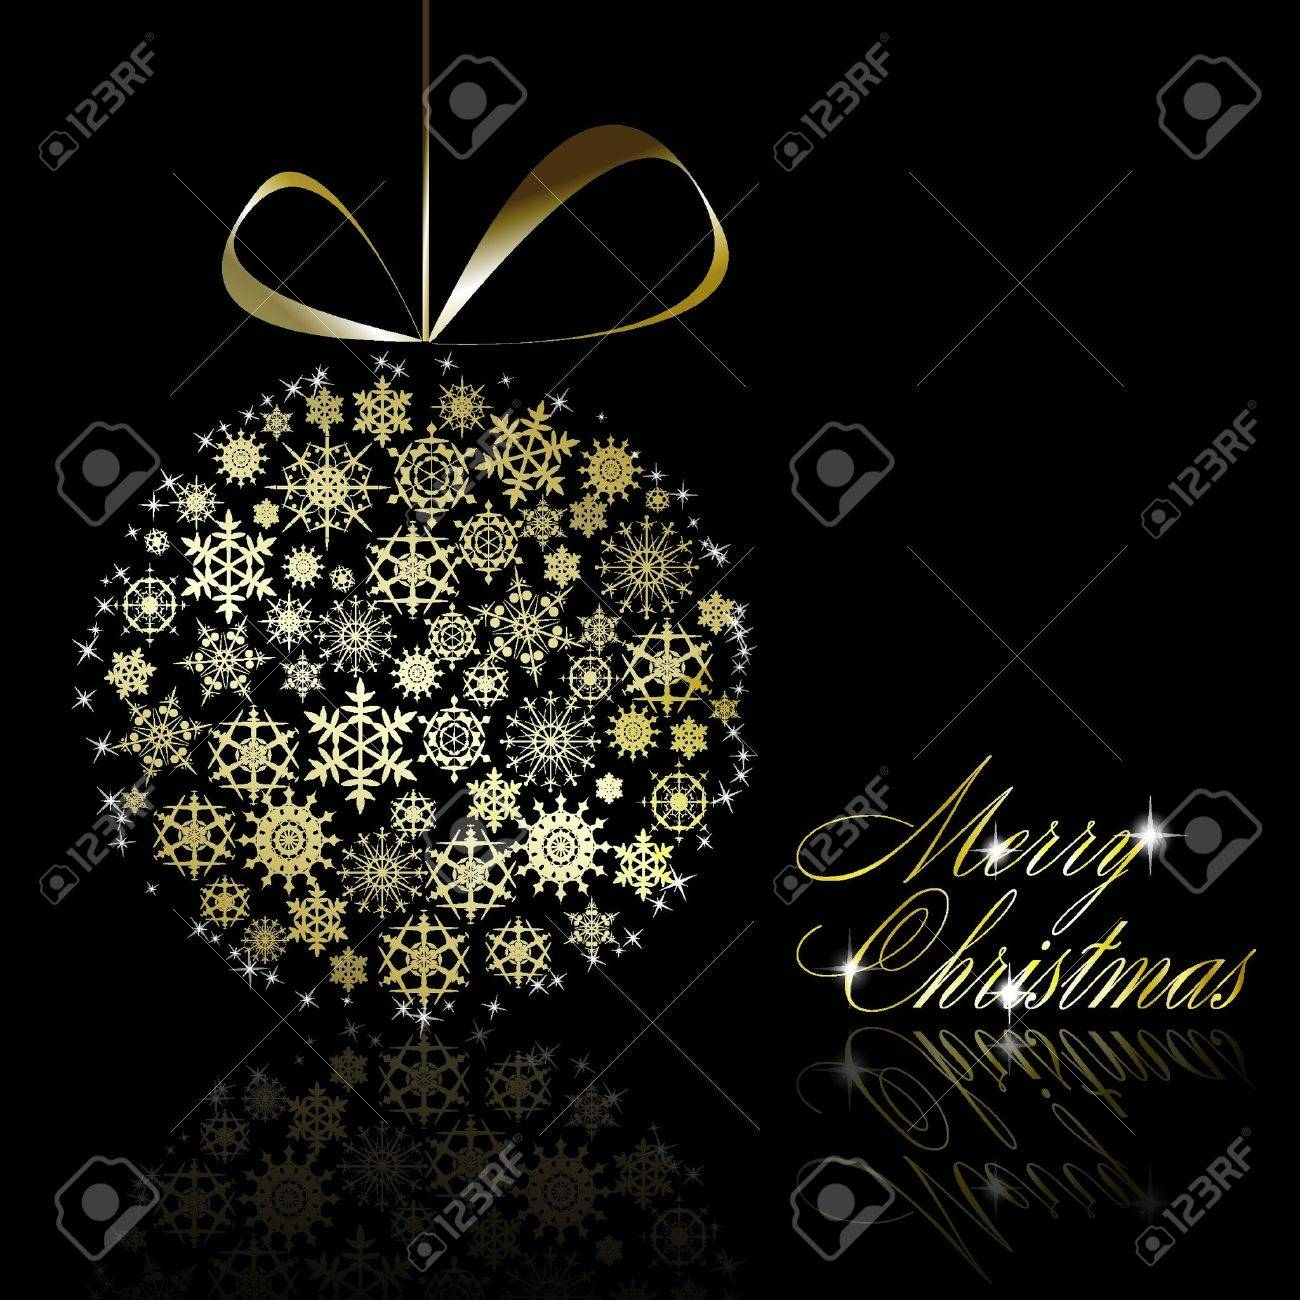 Golden Christmas  ball made of gold snowflakes with stars on black background. illustration Stock Vector - 8687395